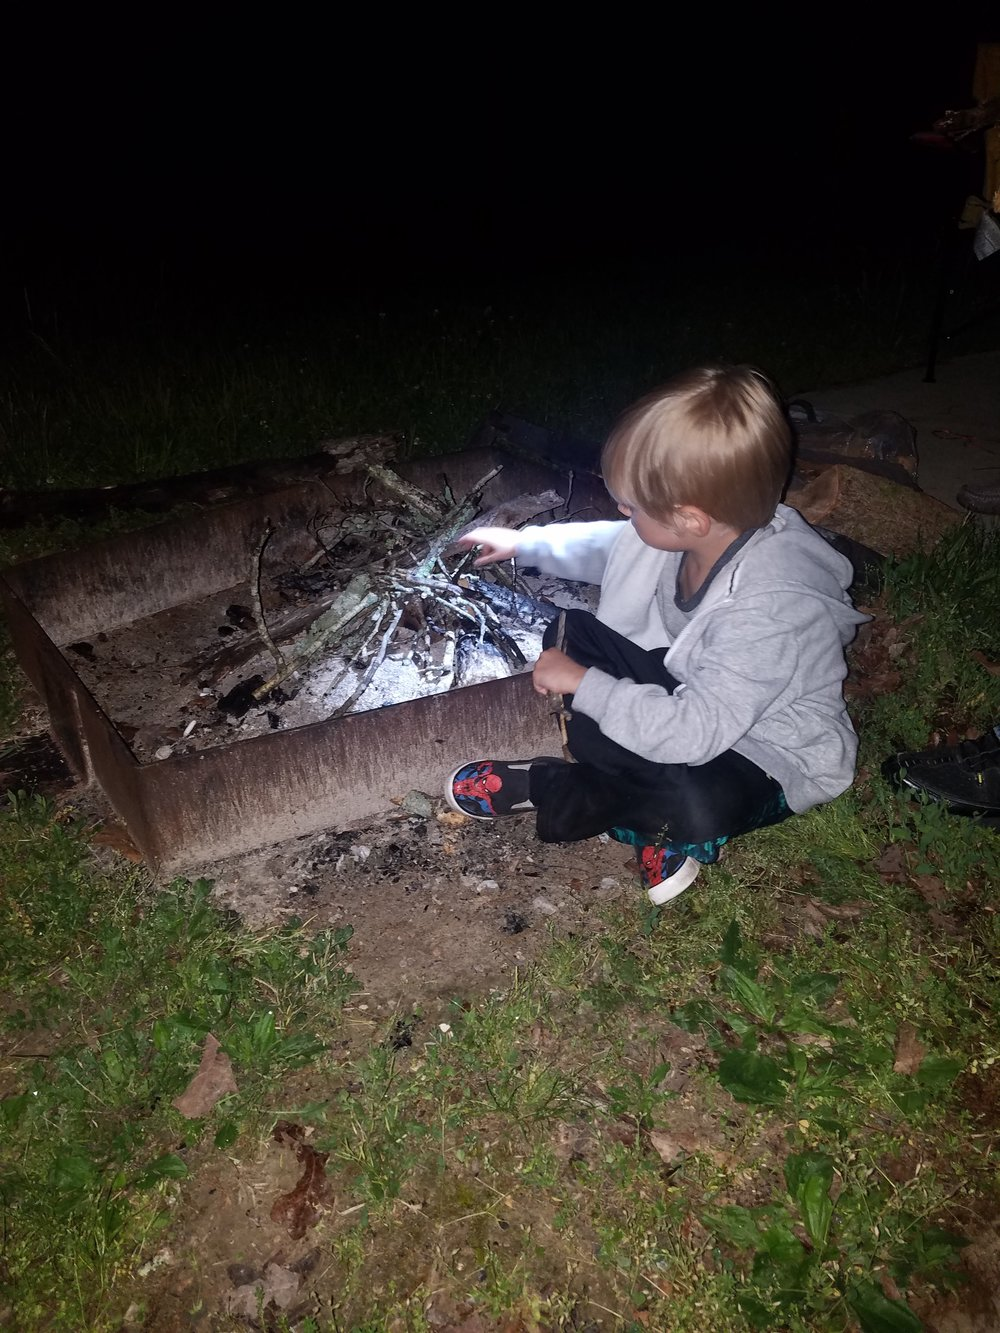 My nephew building up the brush for a fire...never too young to learn...